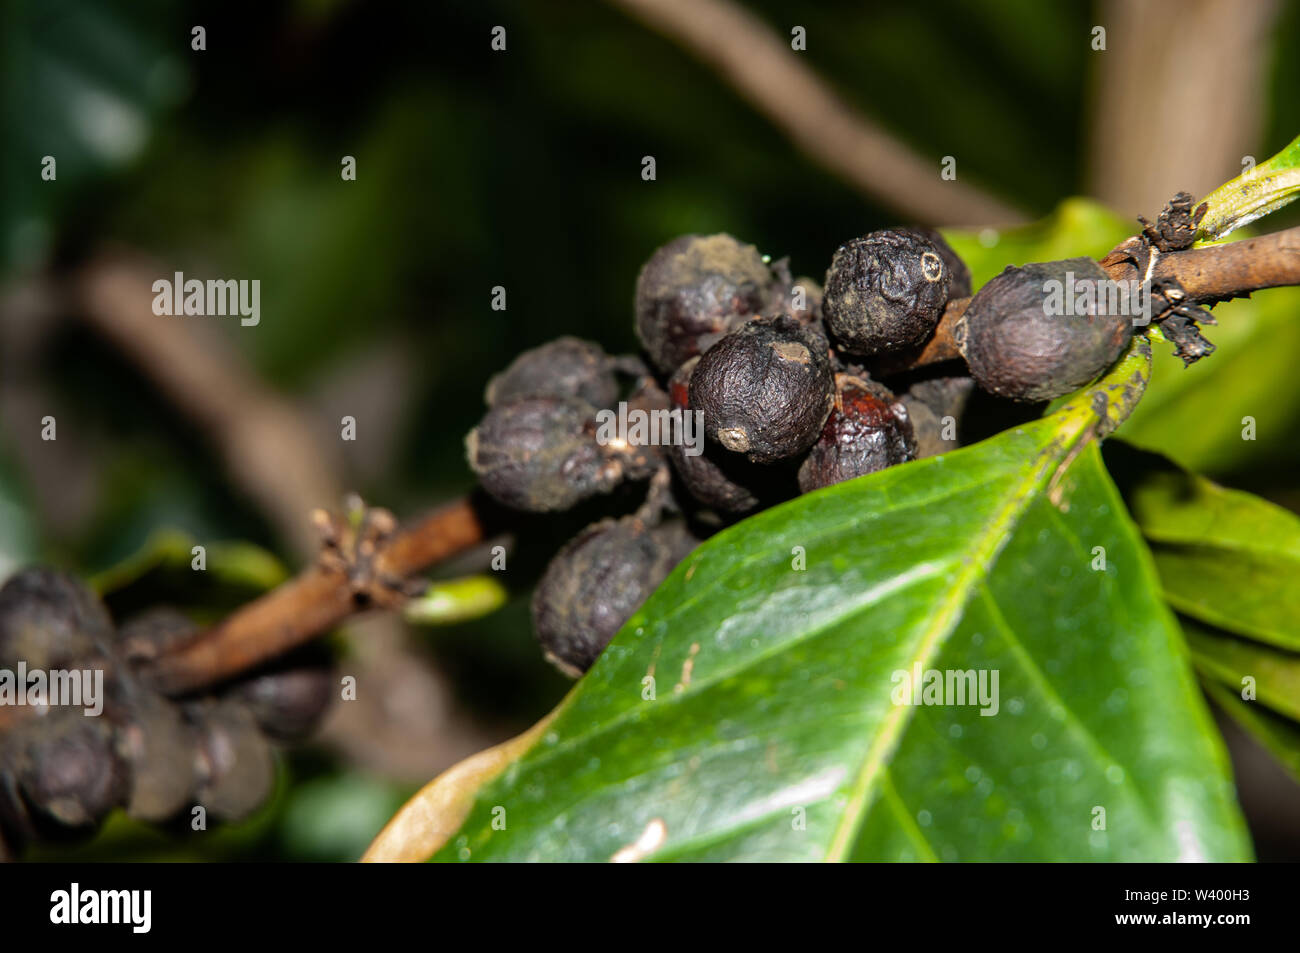 extreme close-up of ripe coffee fruits at twig of a coffea shrub - Stock Image